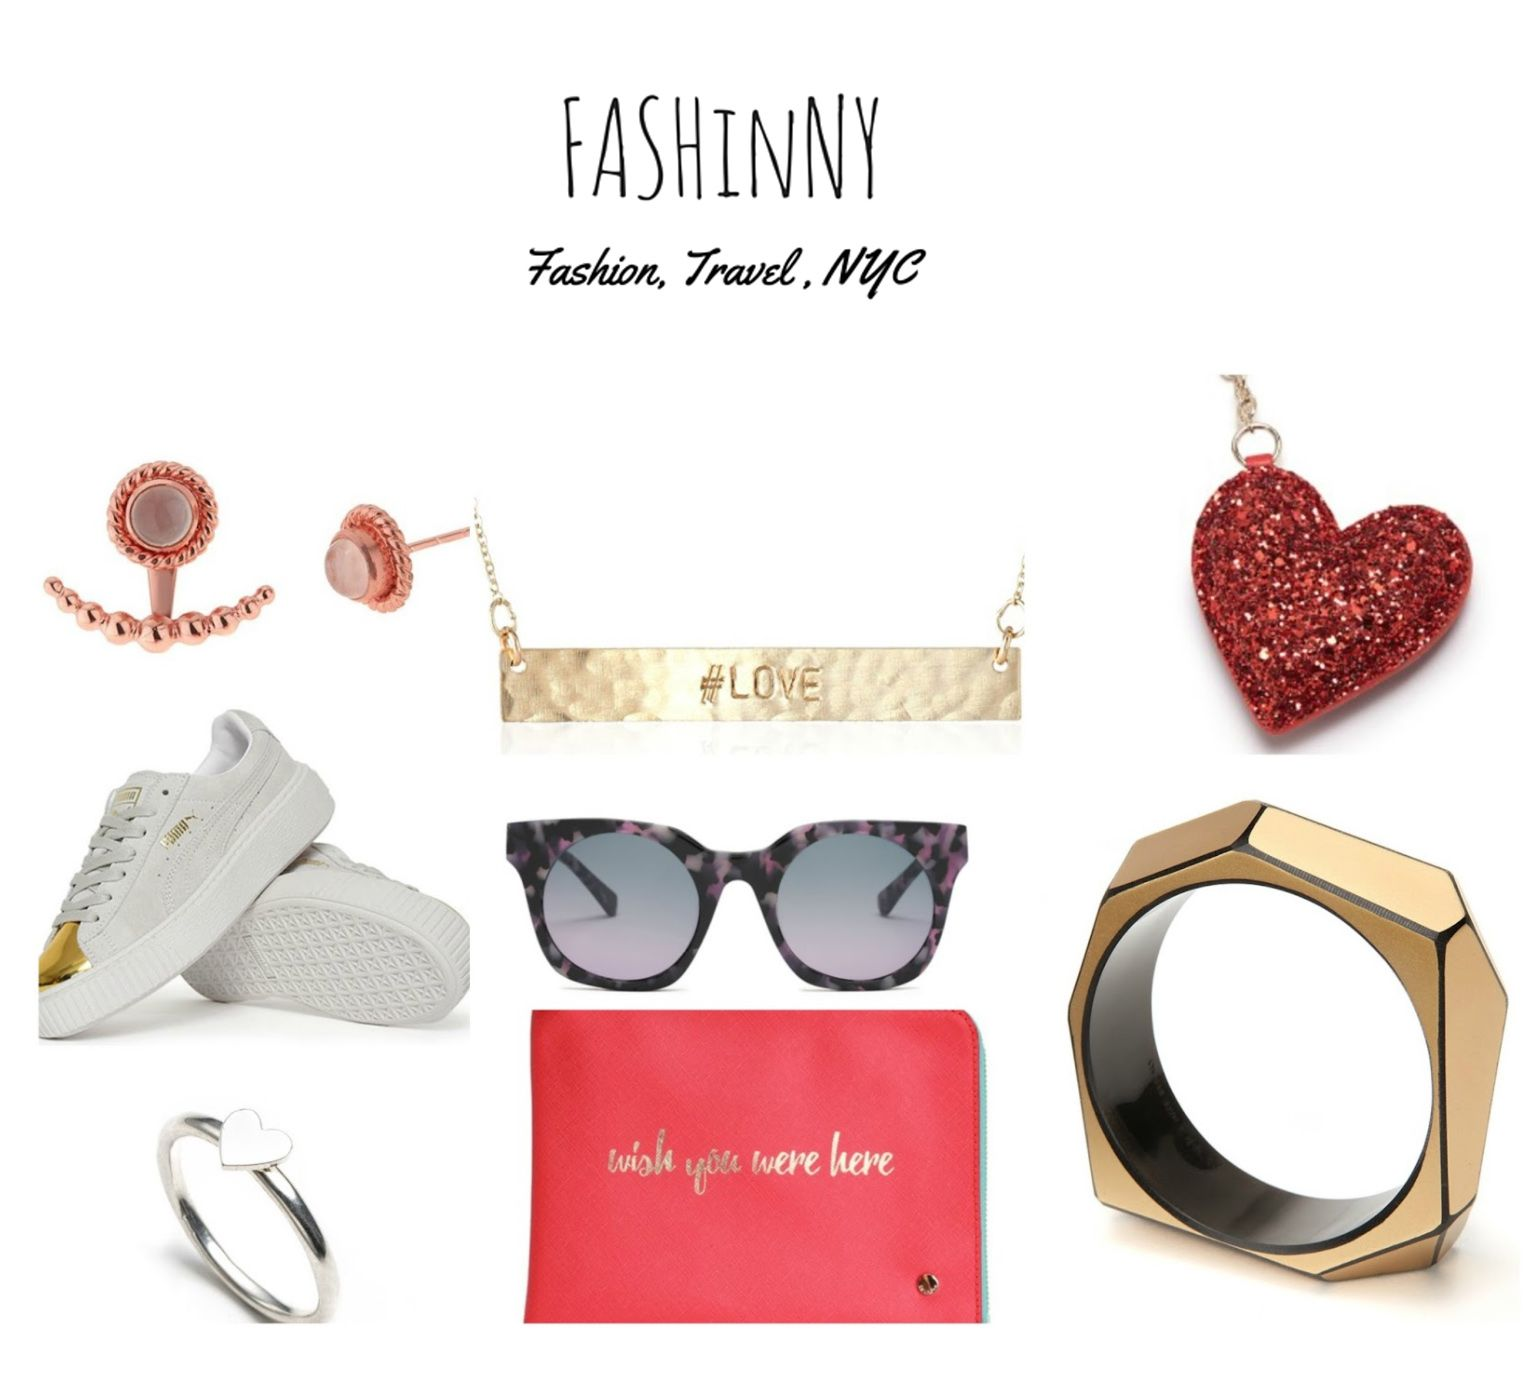 FASHINNY NYC January 2017 Valentine day gifts, Gift